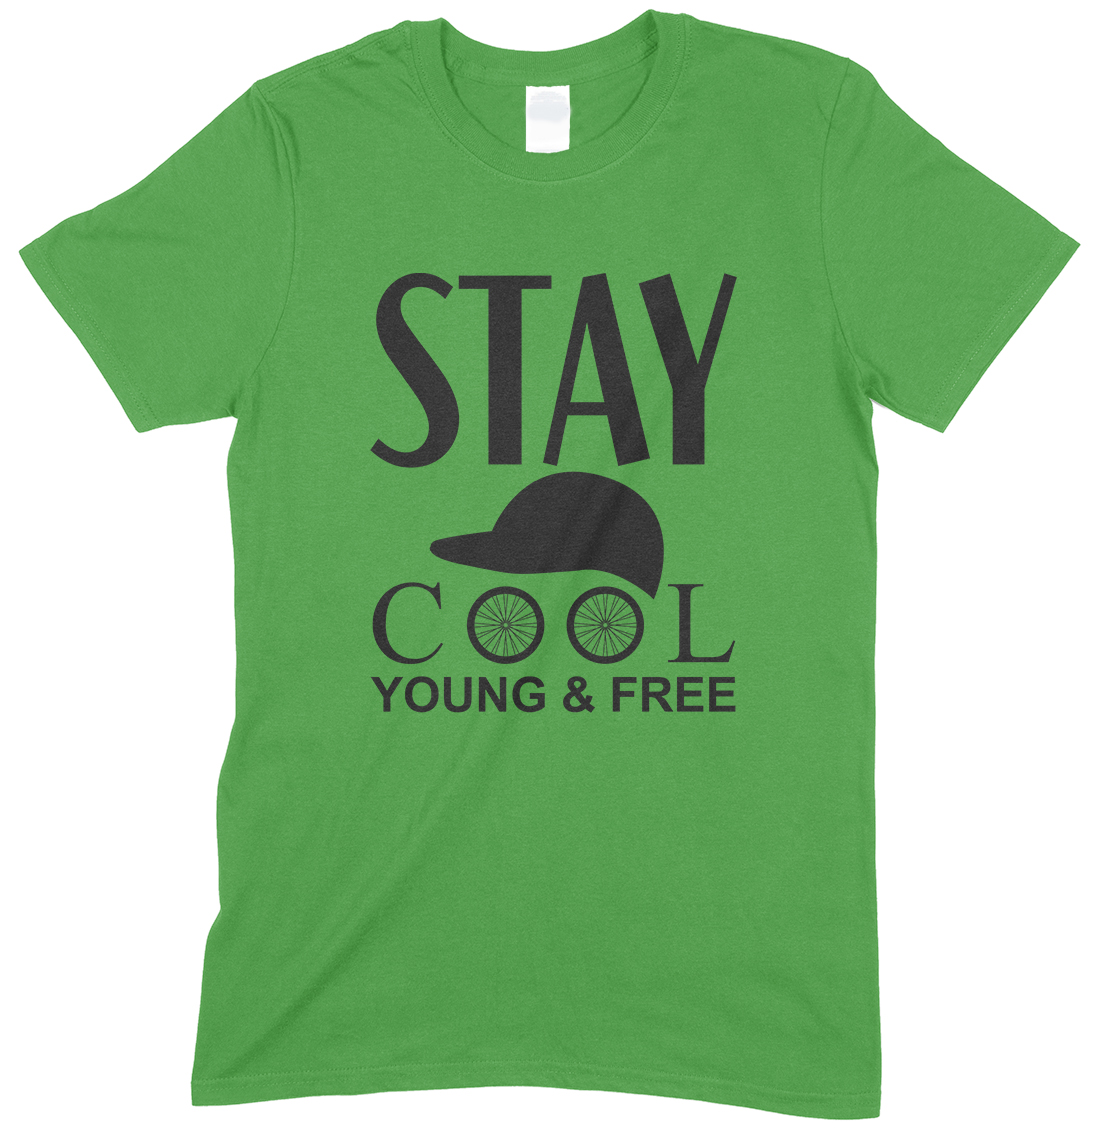 Stay Cool Young & Free -Children's Unisex T Shirt